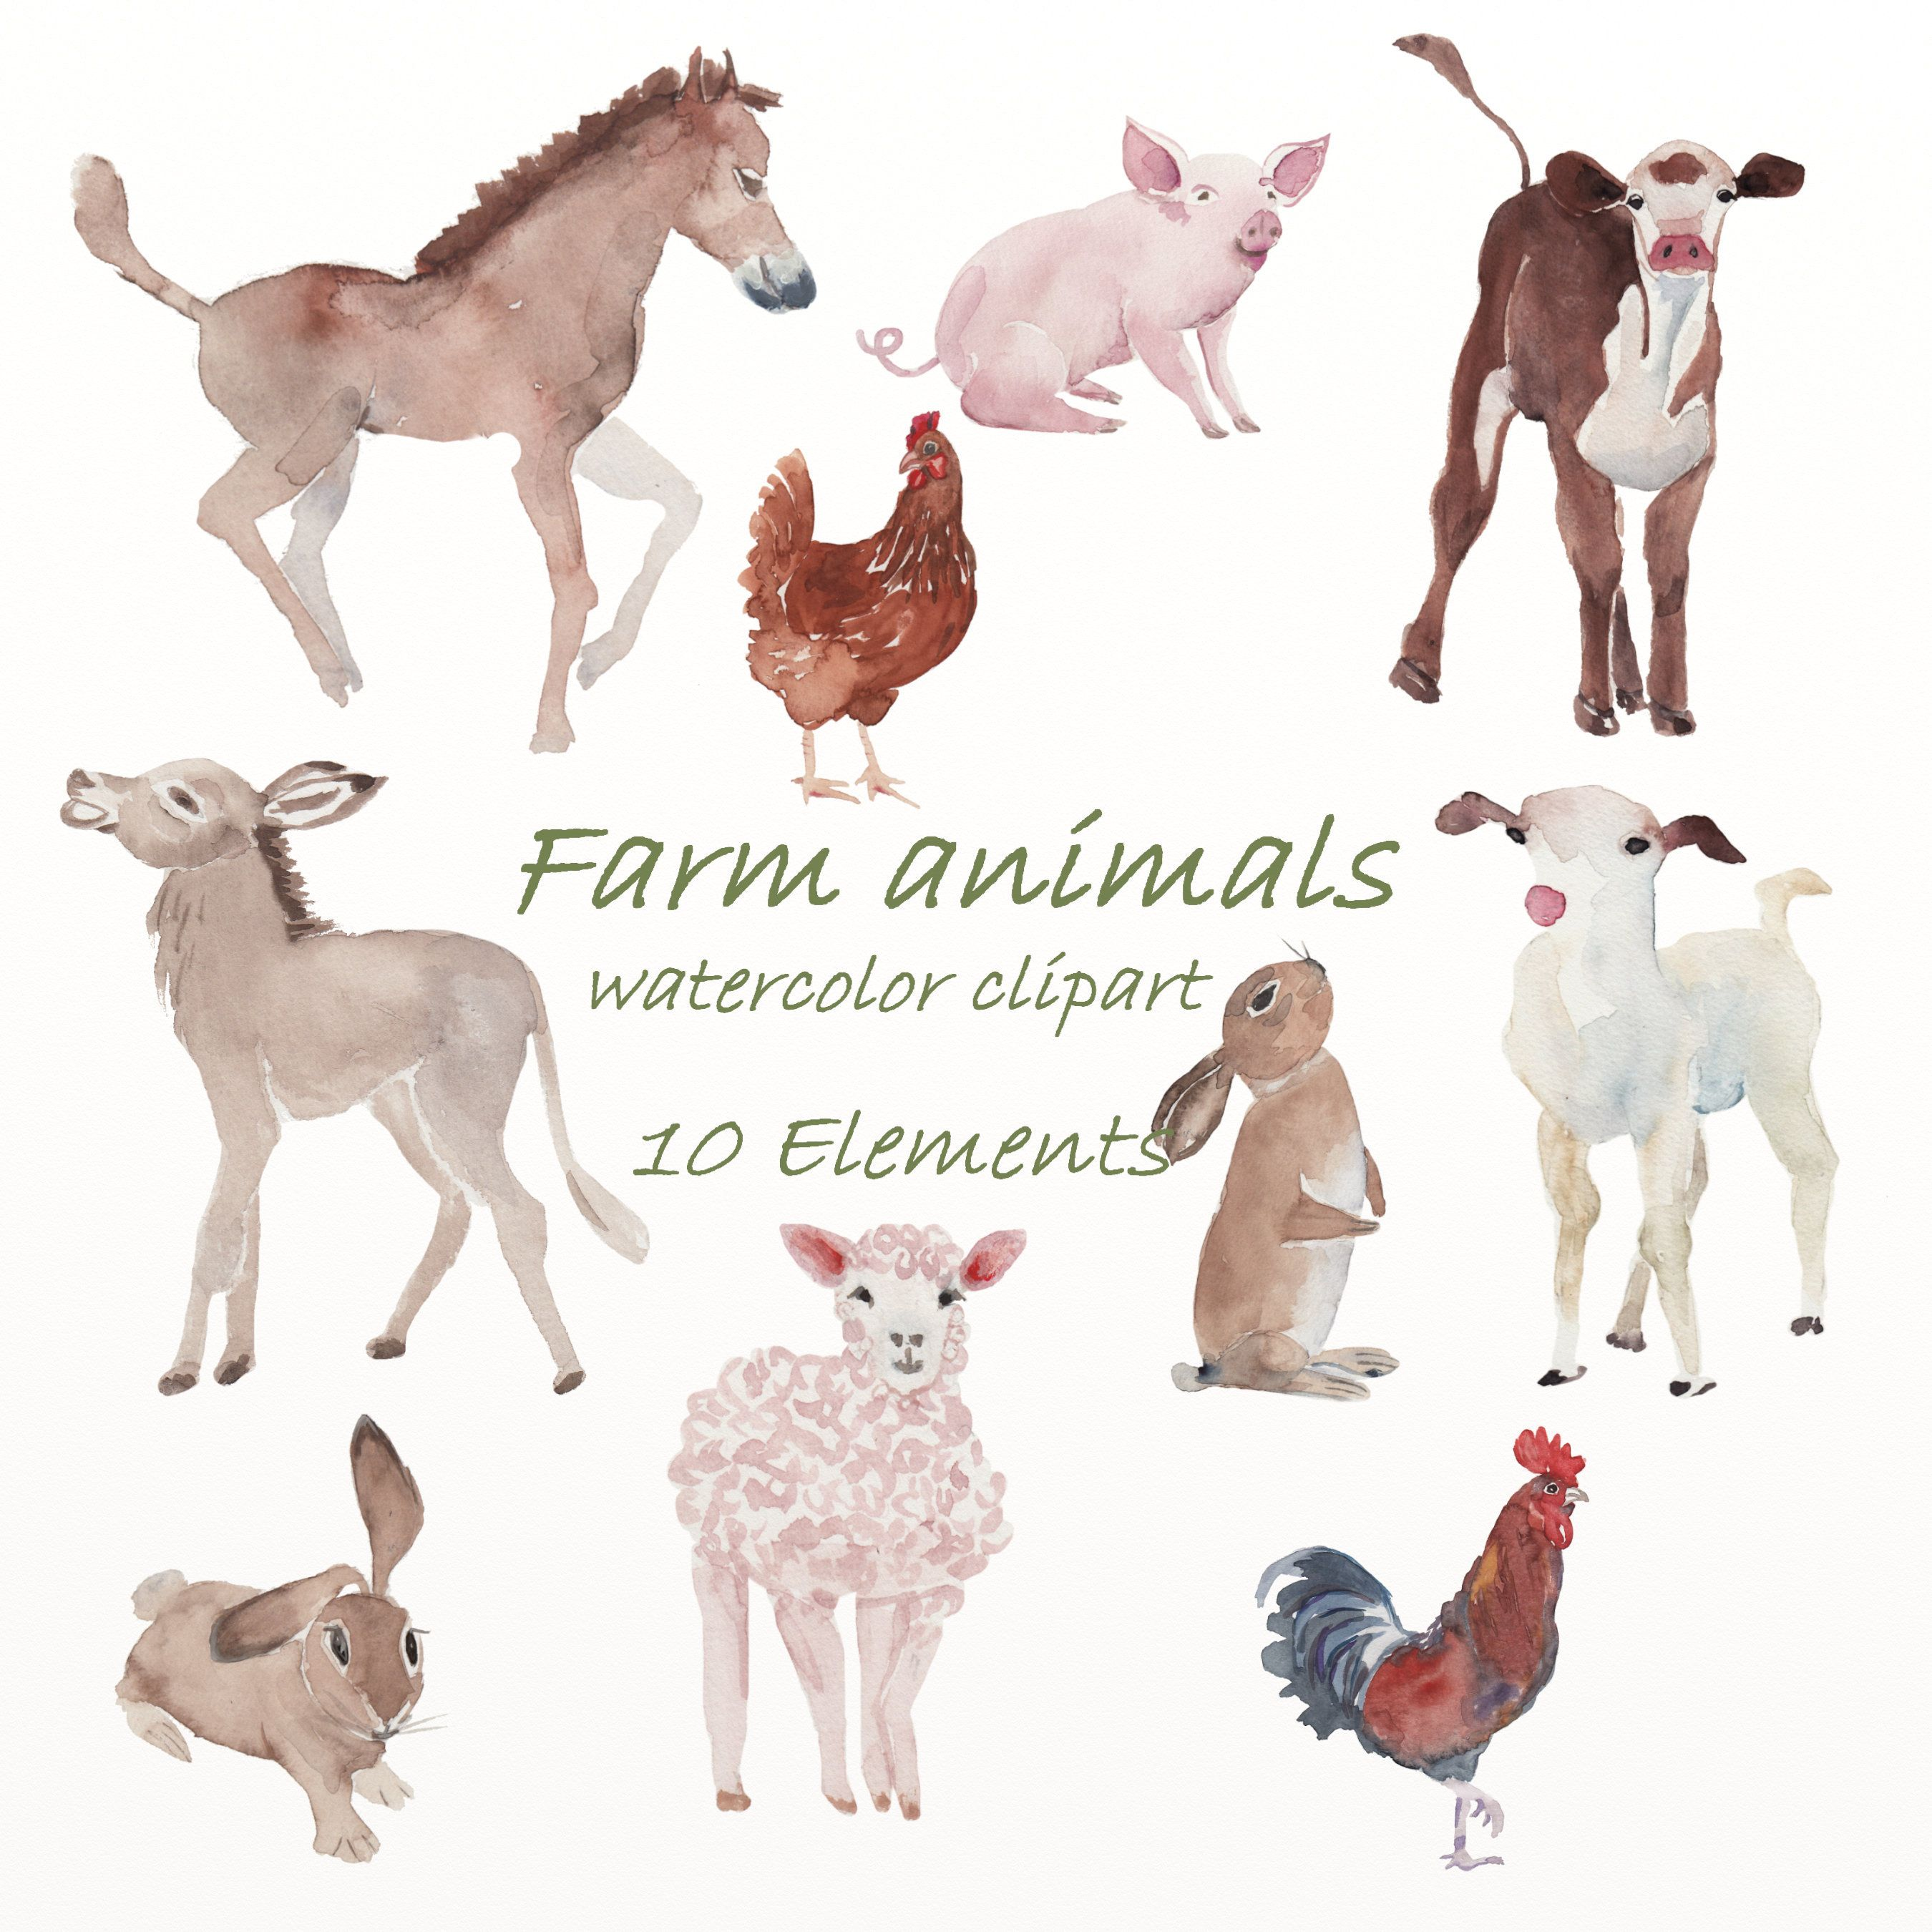 Farm Animals Watercolor Clipart Country Village Png Etsy In 2021 Watercolor Animals Farm Animals Animals